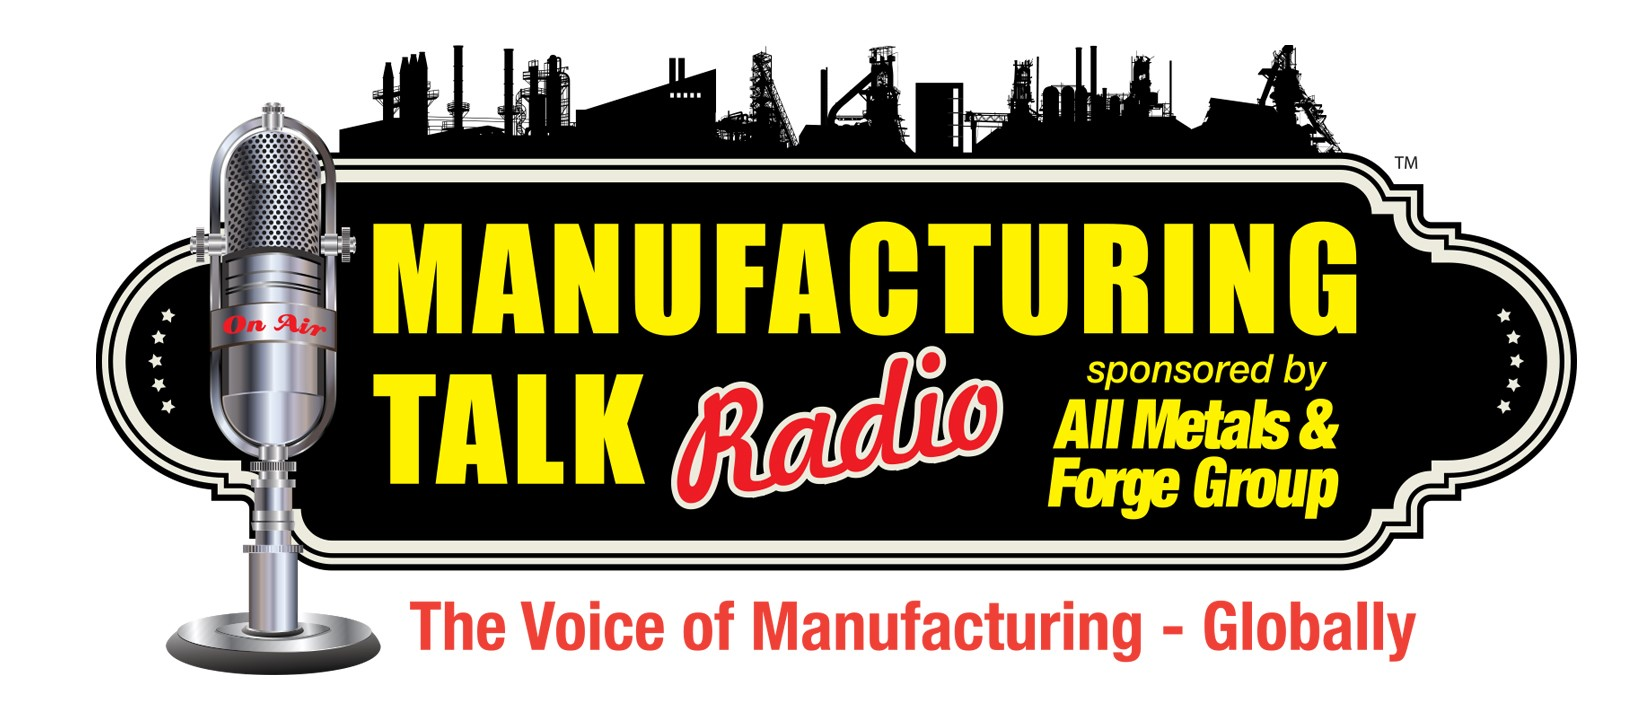 Industry Experts Discuss Outlook for Manufacturing in 2020